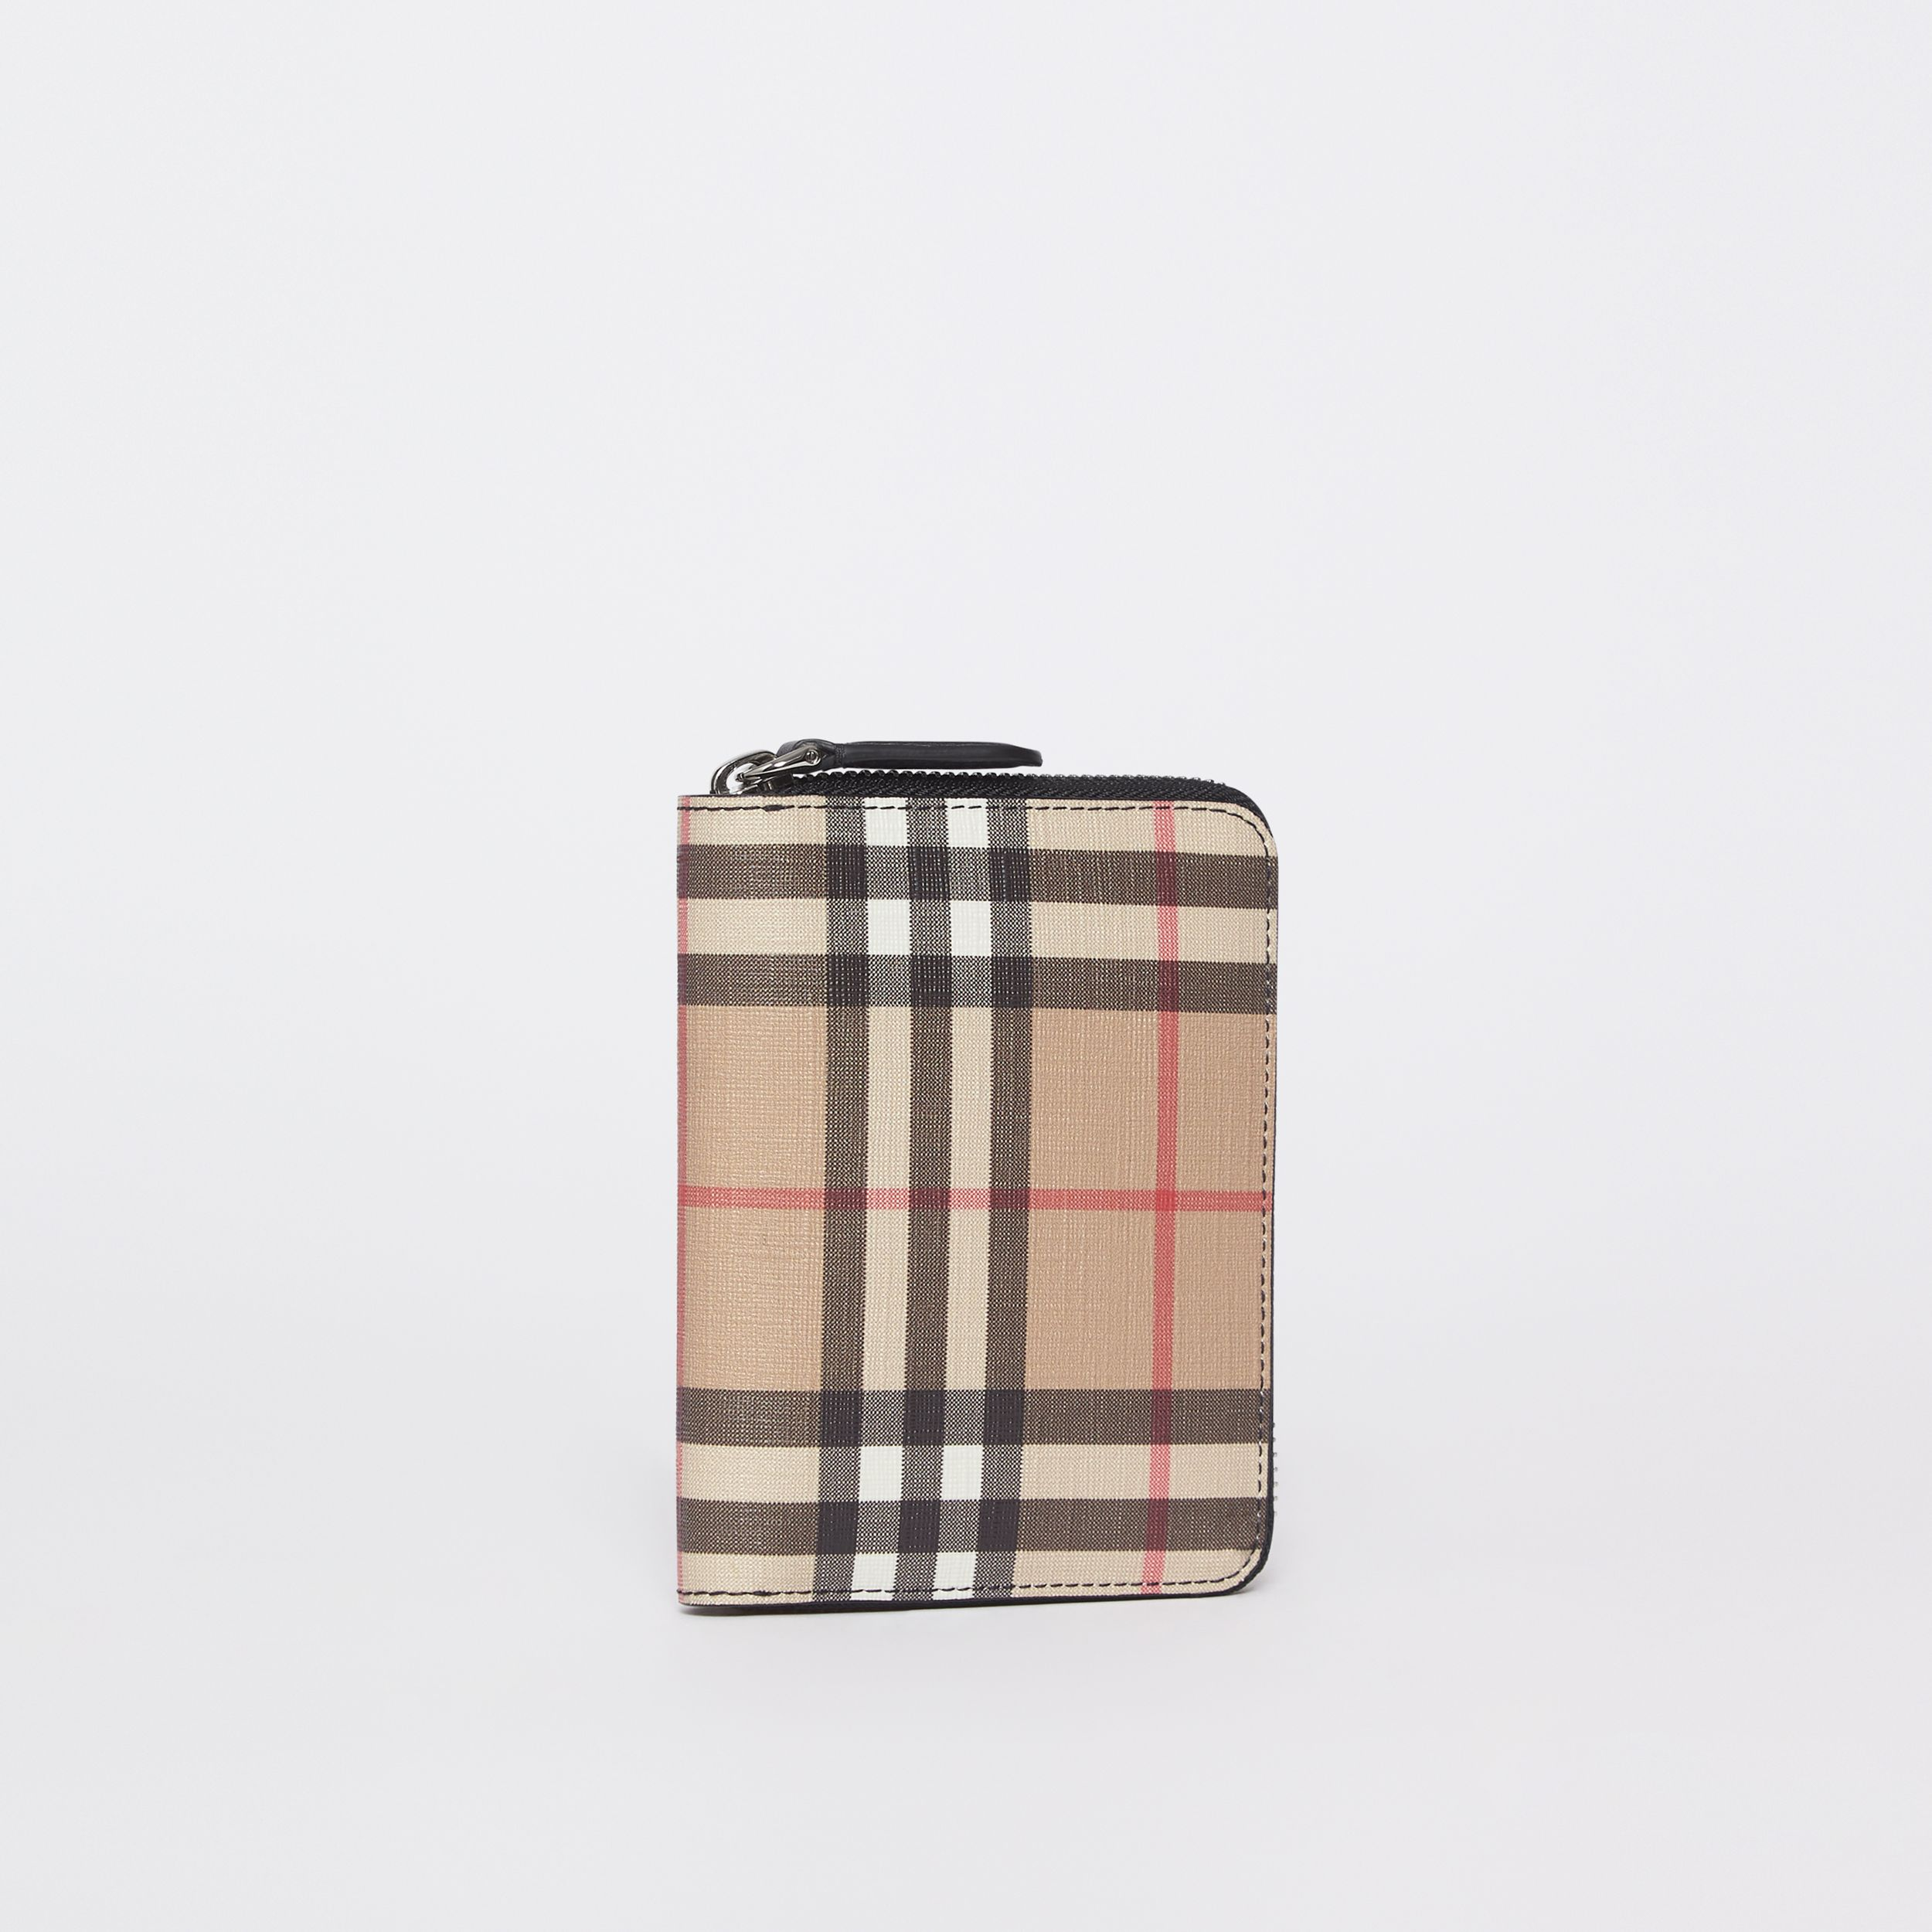 Vintage Check E-canvas Ziparound Wallet in Black - Women | Burberry - 4